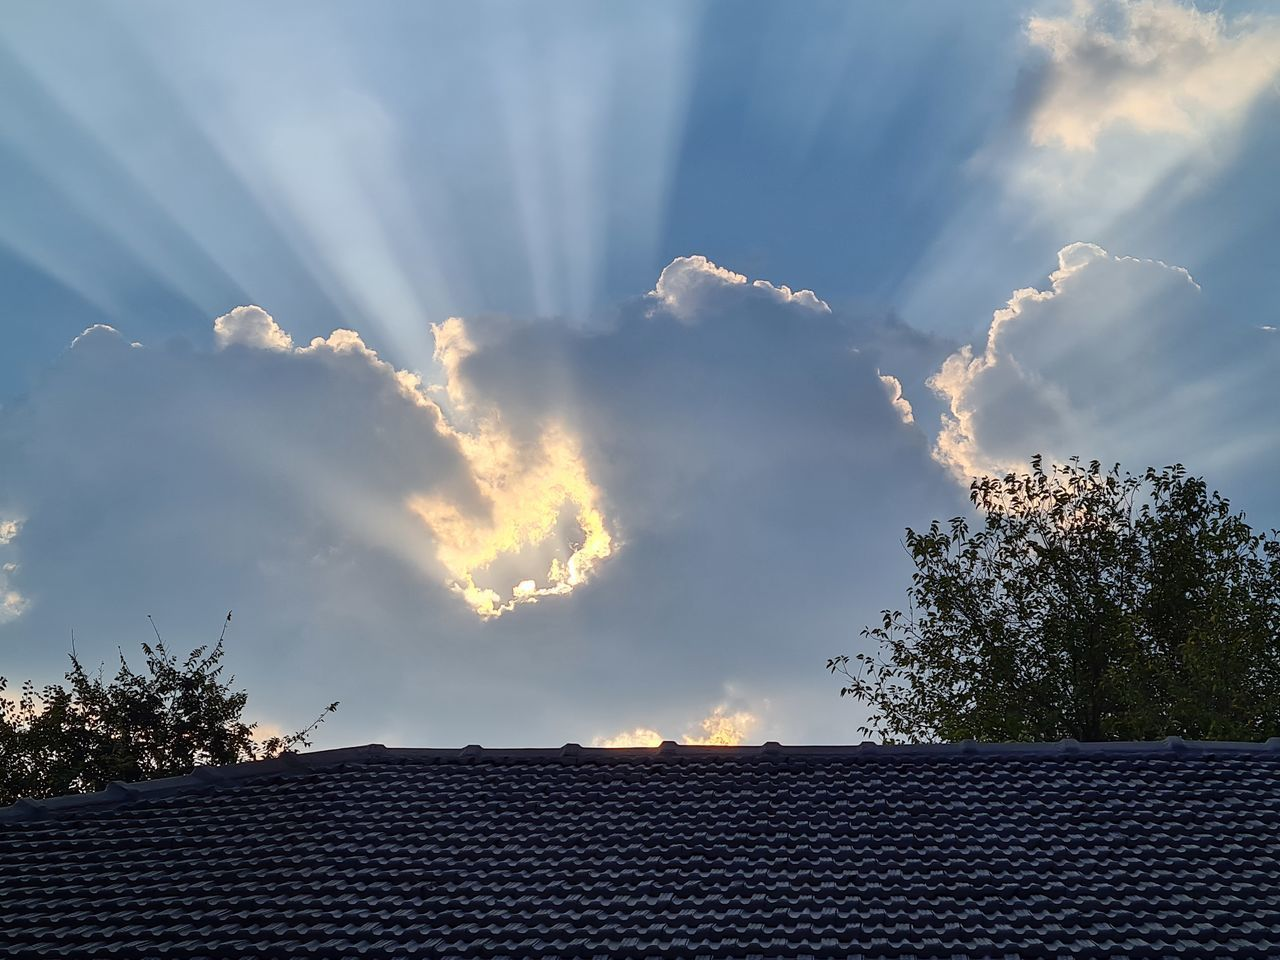 LOW ANGLE VIEW OF ROOF AND BUILDING AGAINST SKY